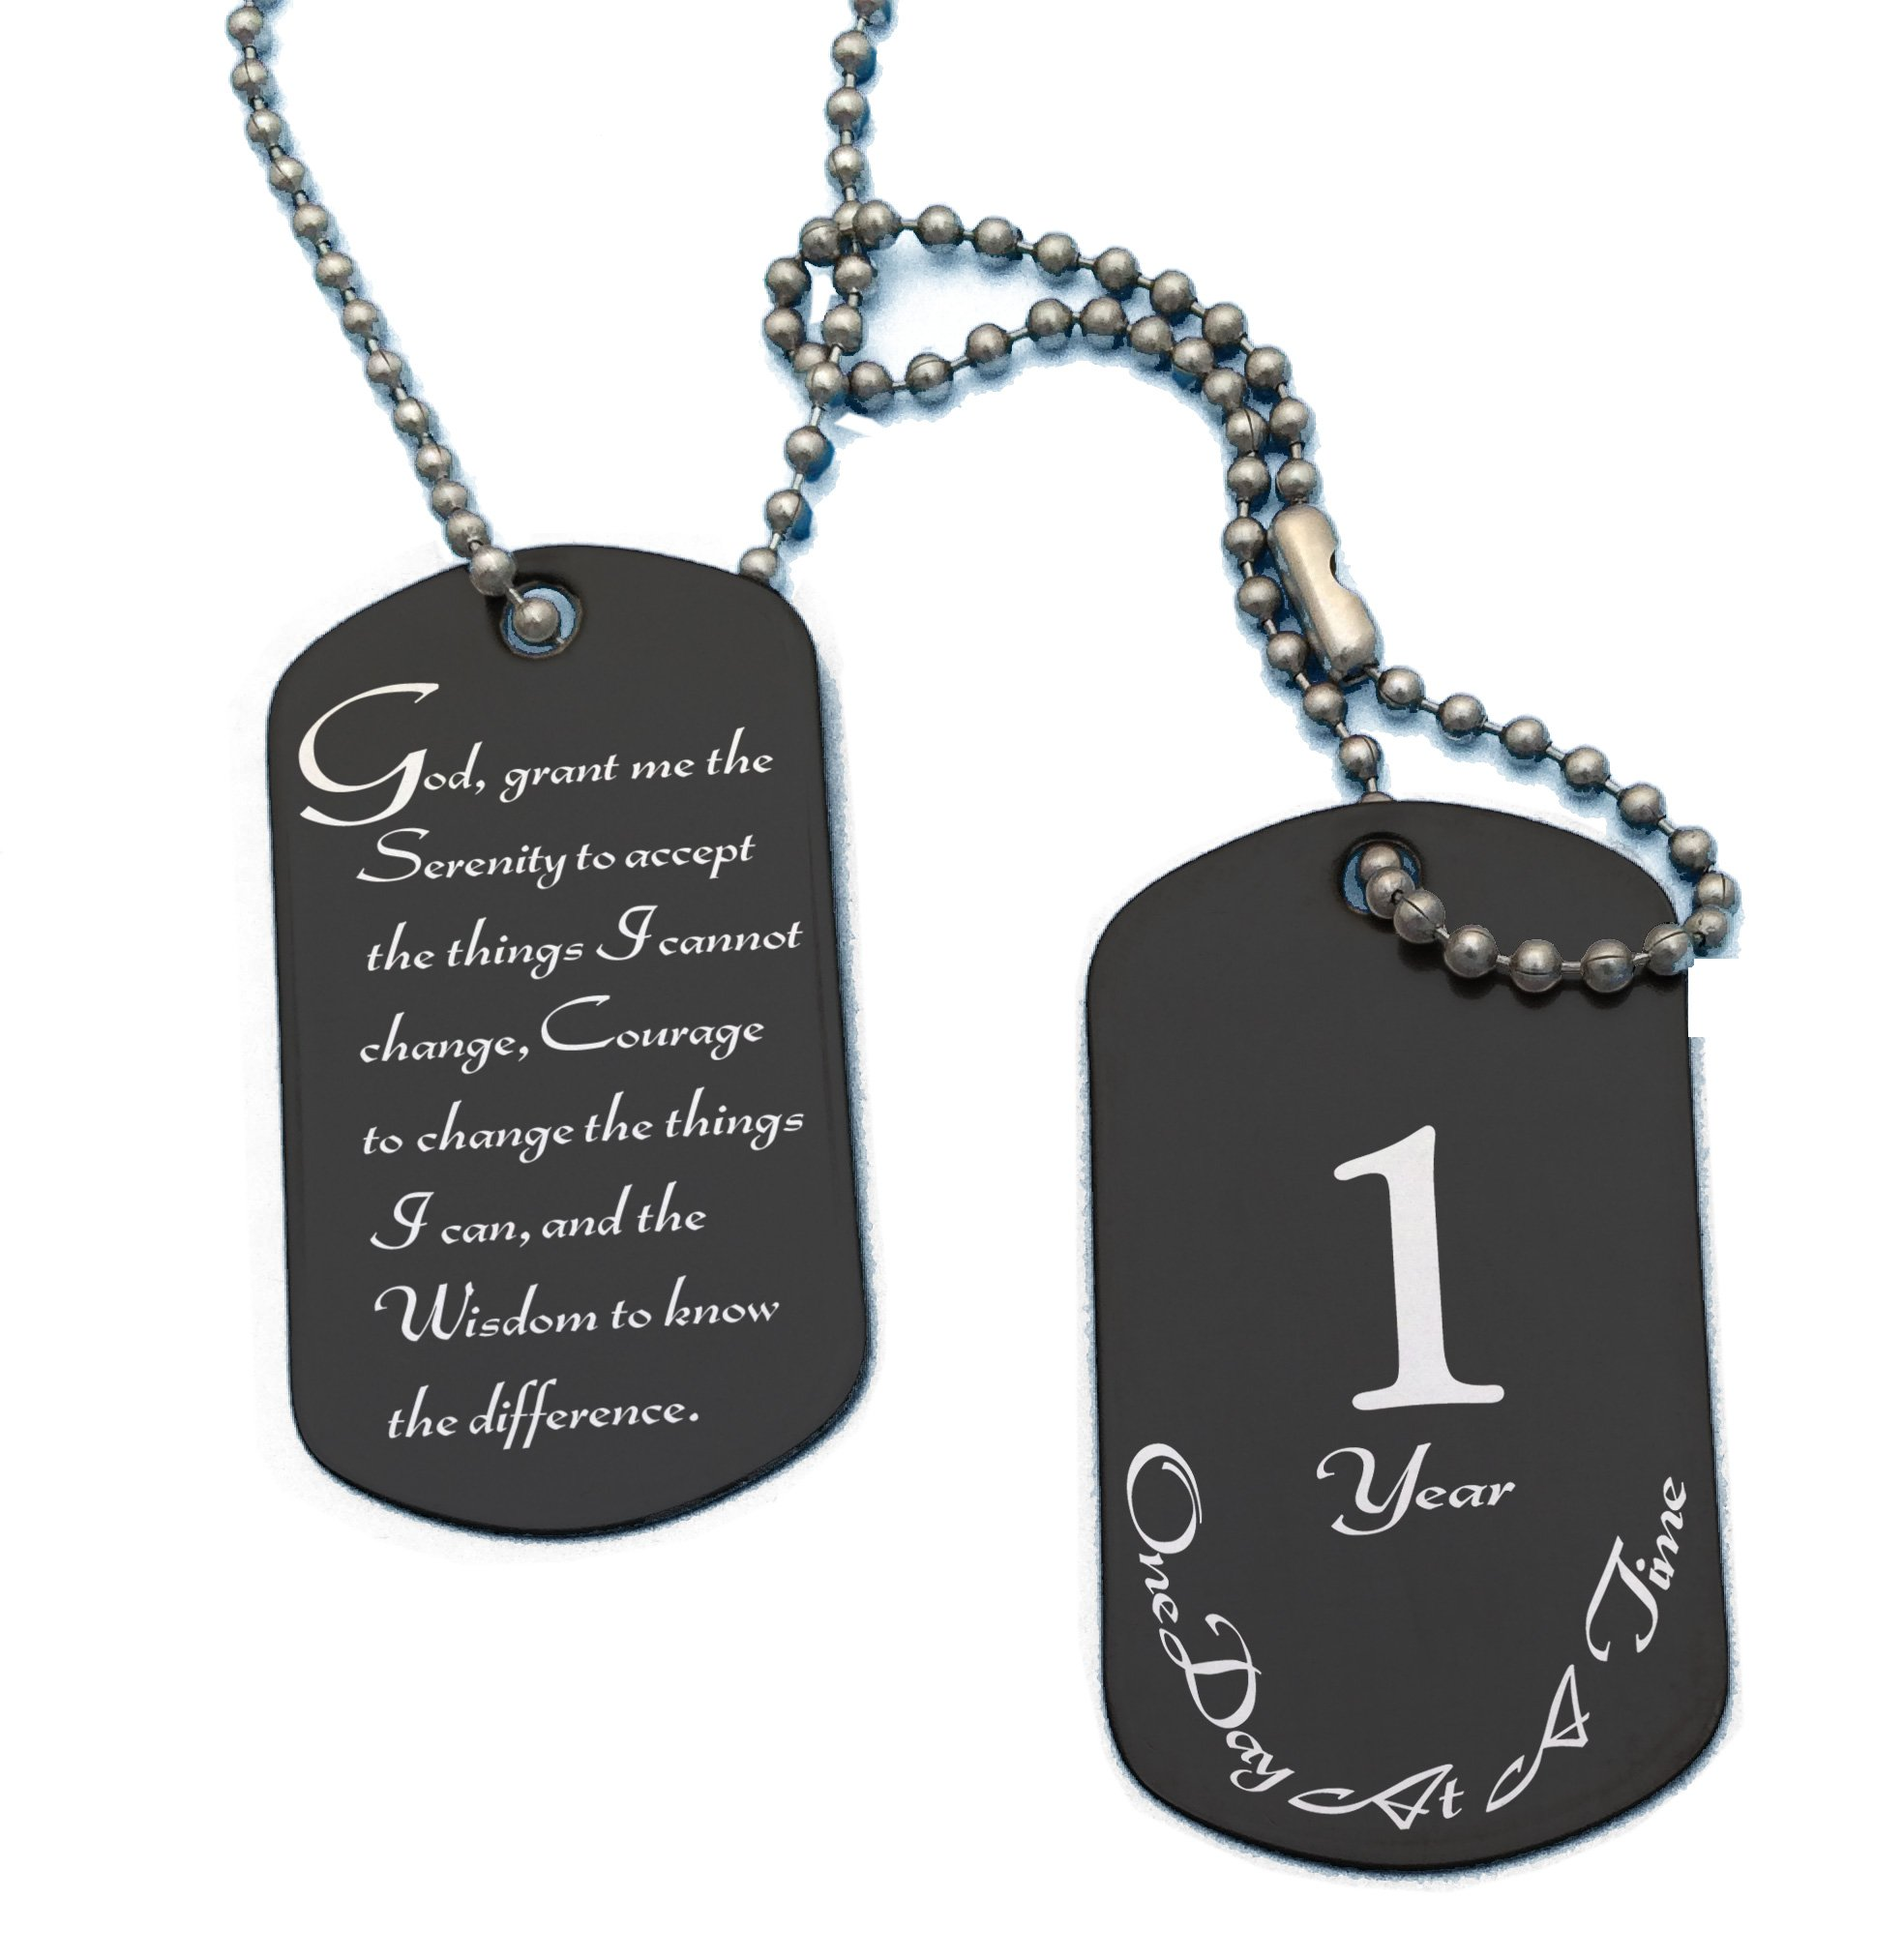 Serenity Prayer and 1 Year Sobriety Anniversary Black Stainless Steel Dog Tag Necklace for Clean Sober Birthday, AA, Alcoholics Anonymous, NA, Narcotics Anonymous